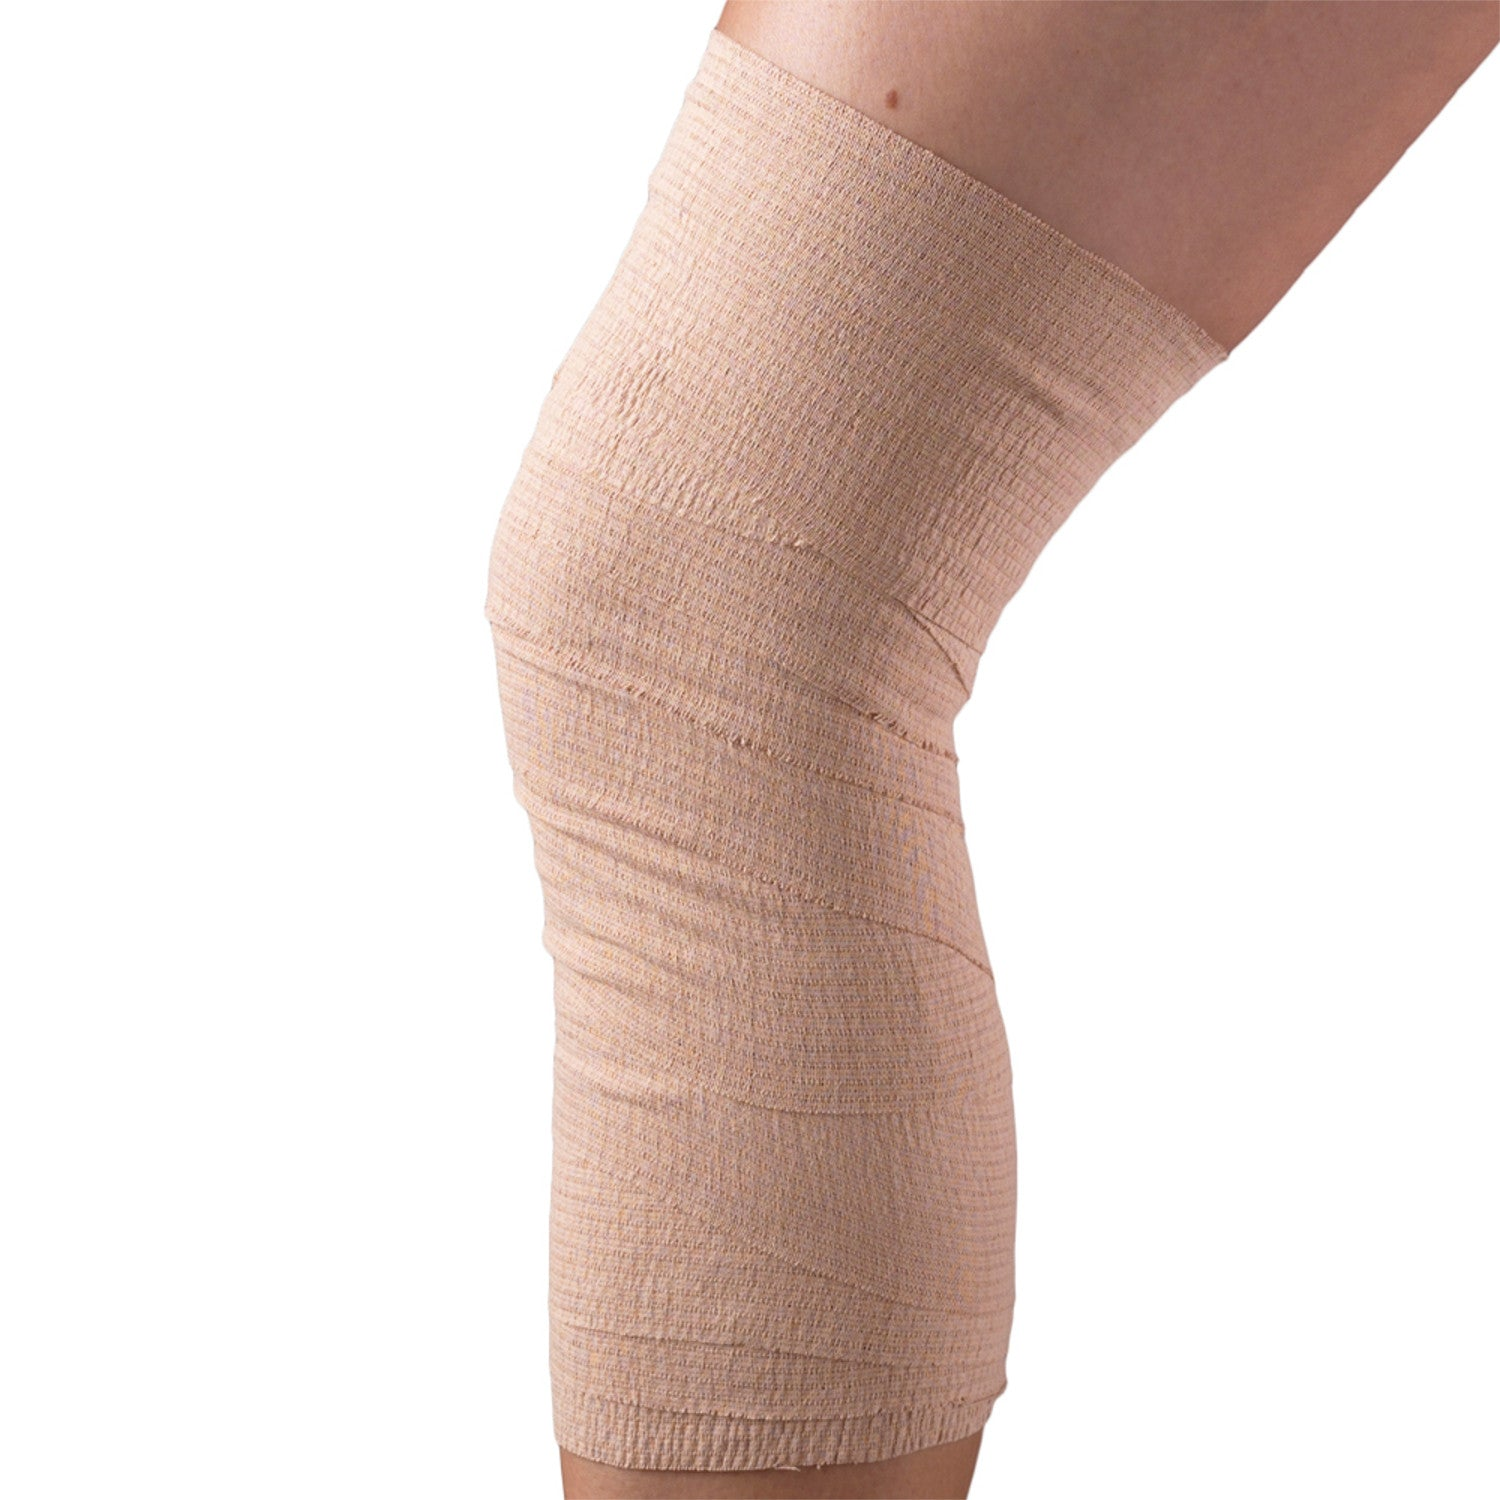 "4"" WIDE SELF-ADHERING ELASTIC BANDAGE ON A KNEE"